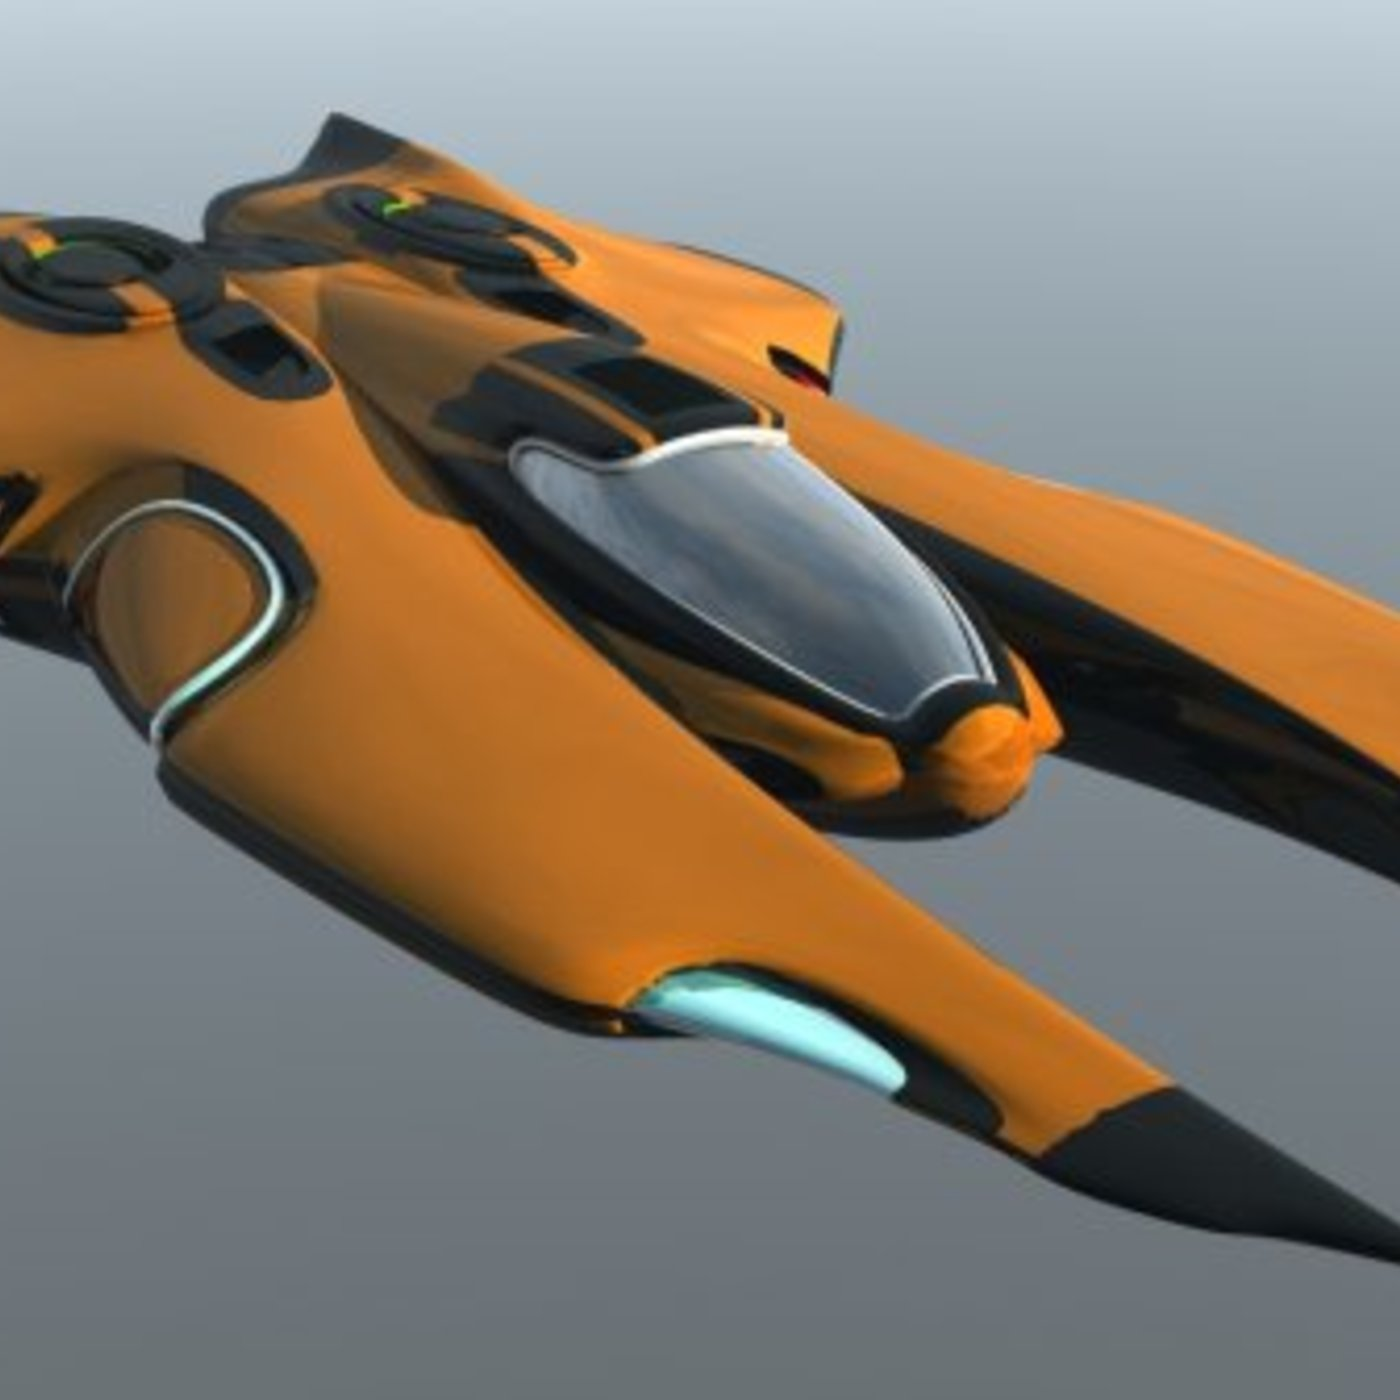 Space ship Low-poly 3D model